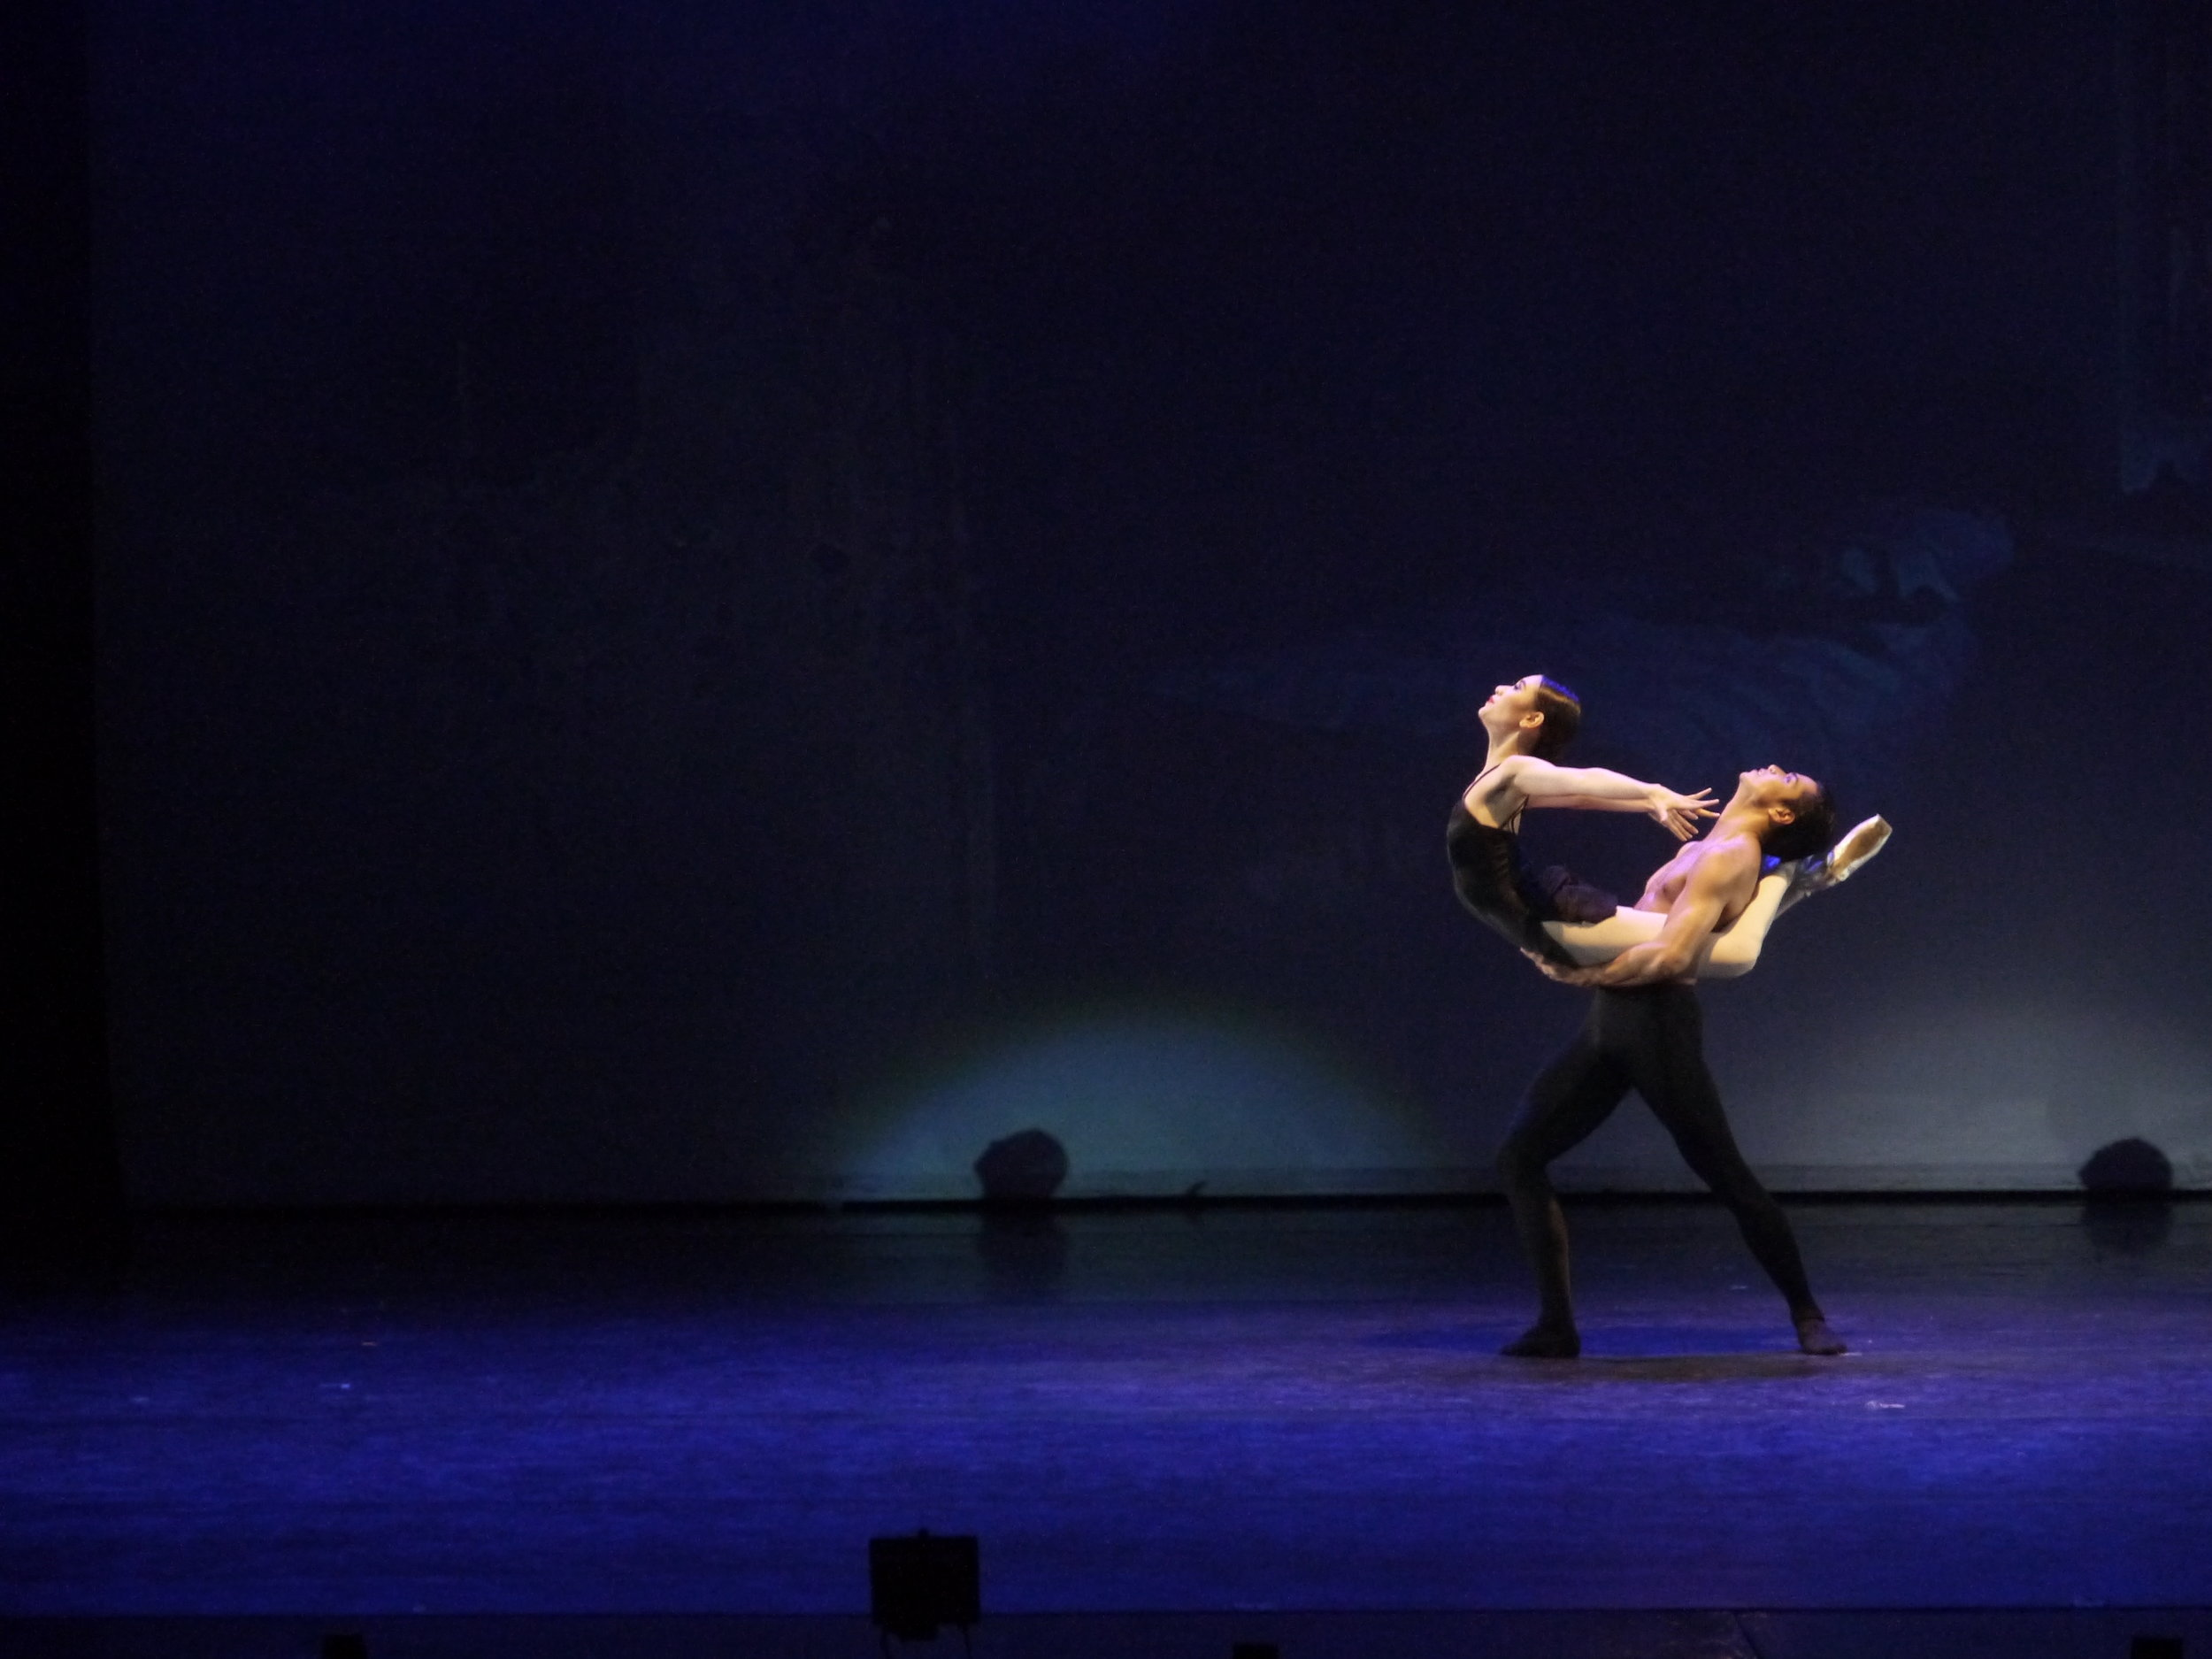 """""""It doesn't just look intense, it feels intense,"""" describes Abi of the ballet where she's paired opposite soloist Mark Sumaylo. Photo by Giselle P. Kasilag."""